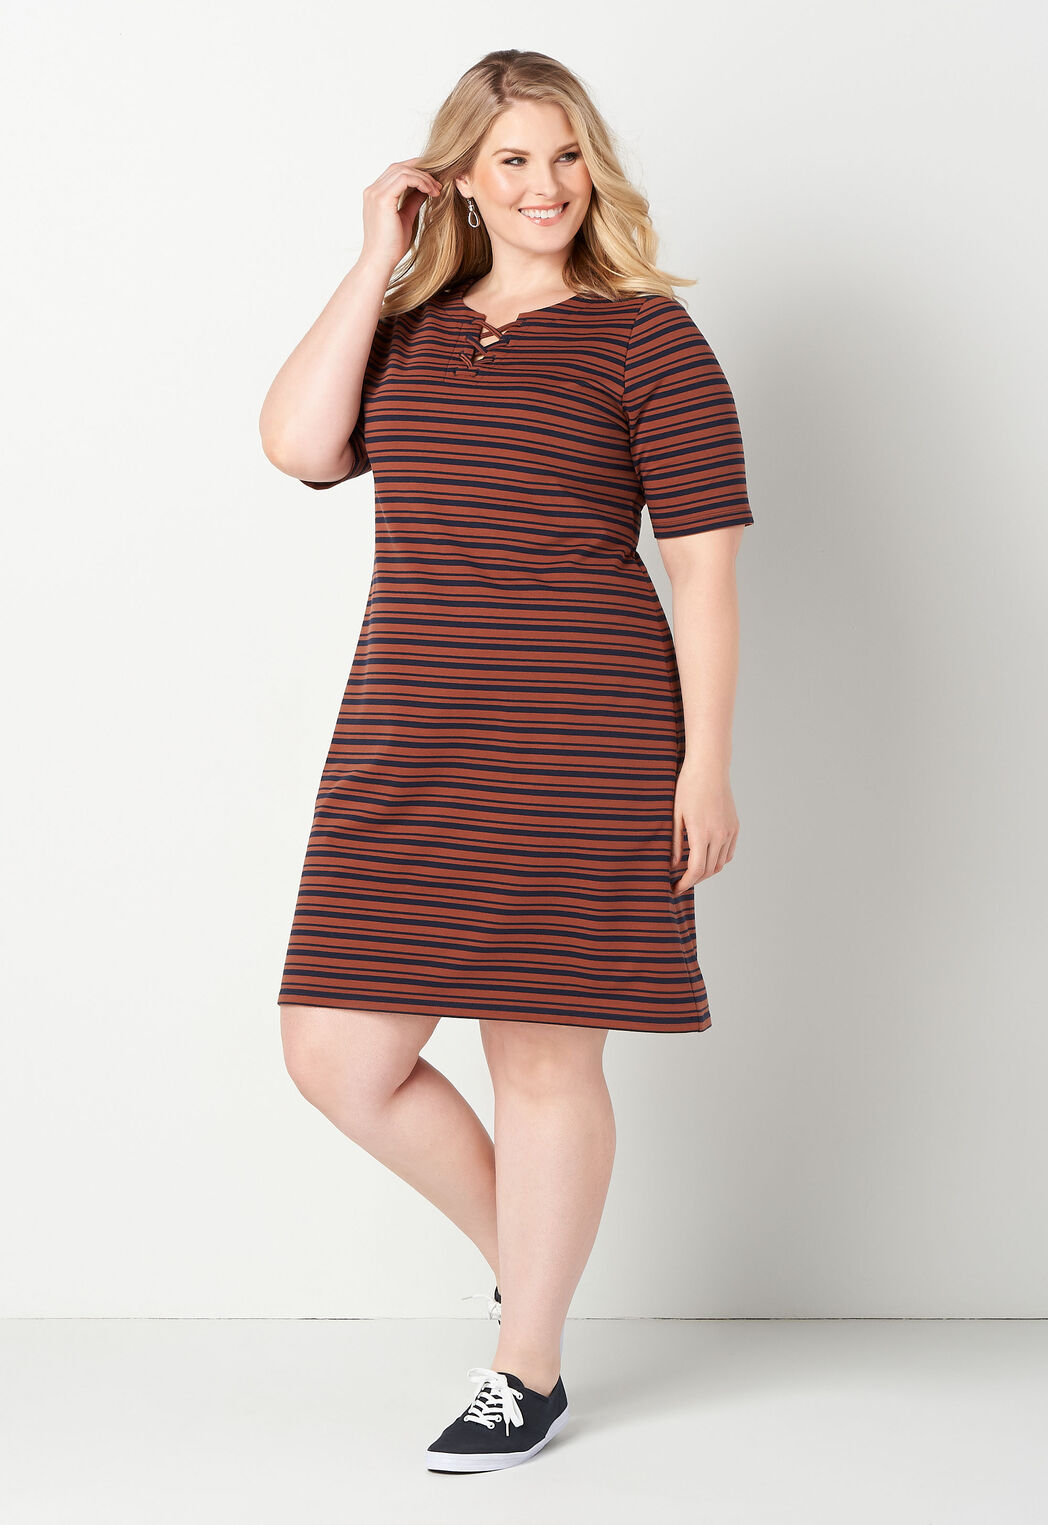 Relaxed Restyled Lace Neck Striped Plus Size Dress - CBK Web ...